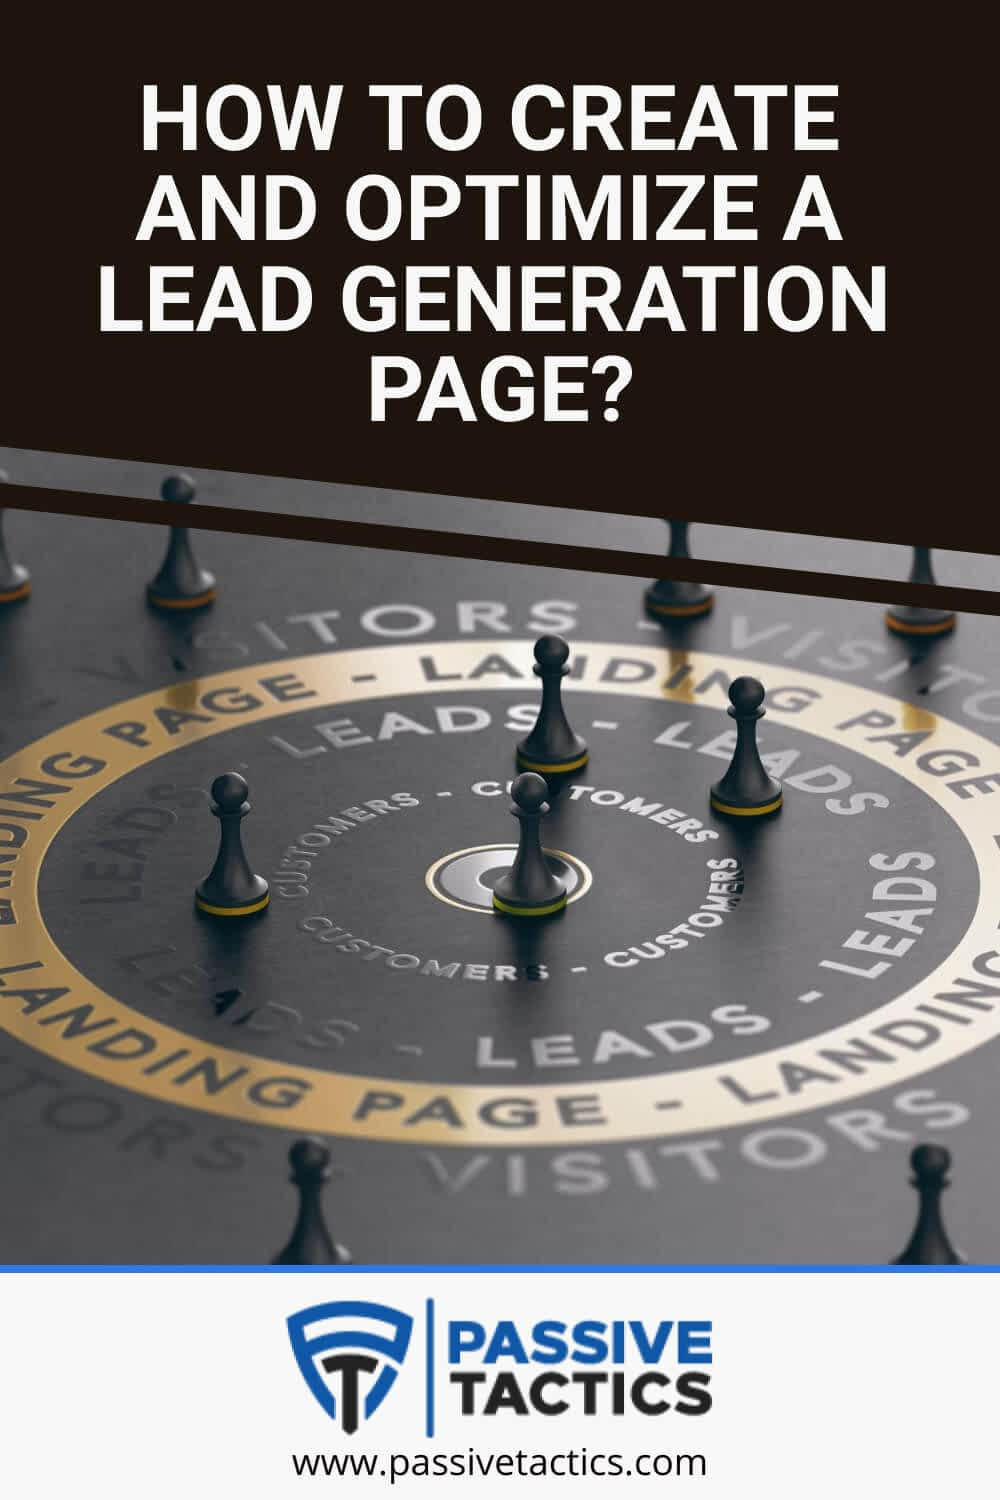 How To Create And Optimize A Lead Generation Page?